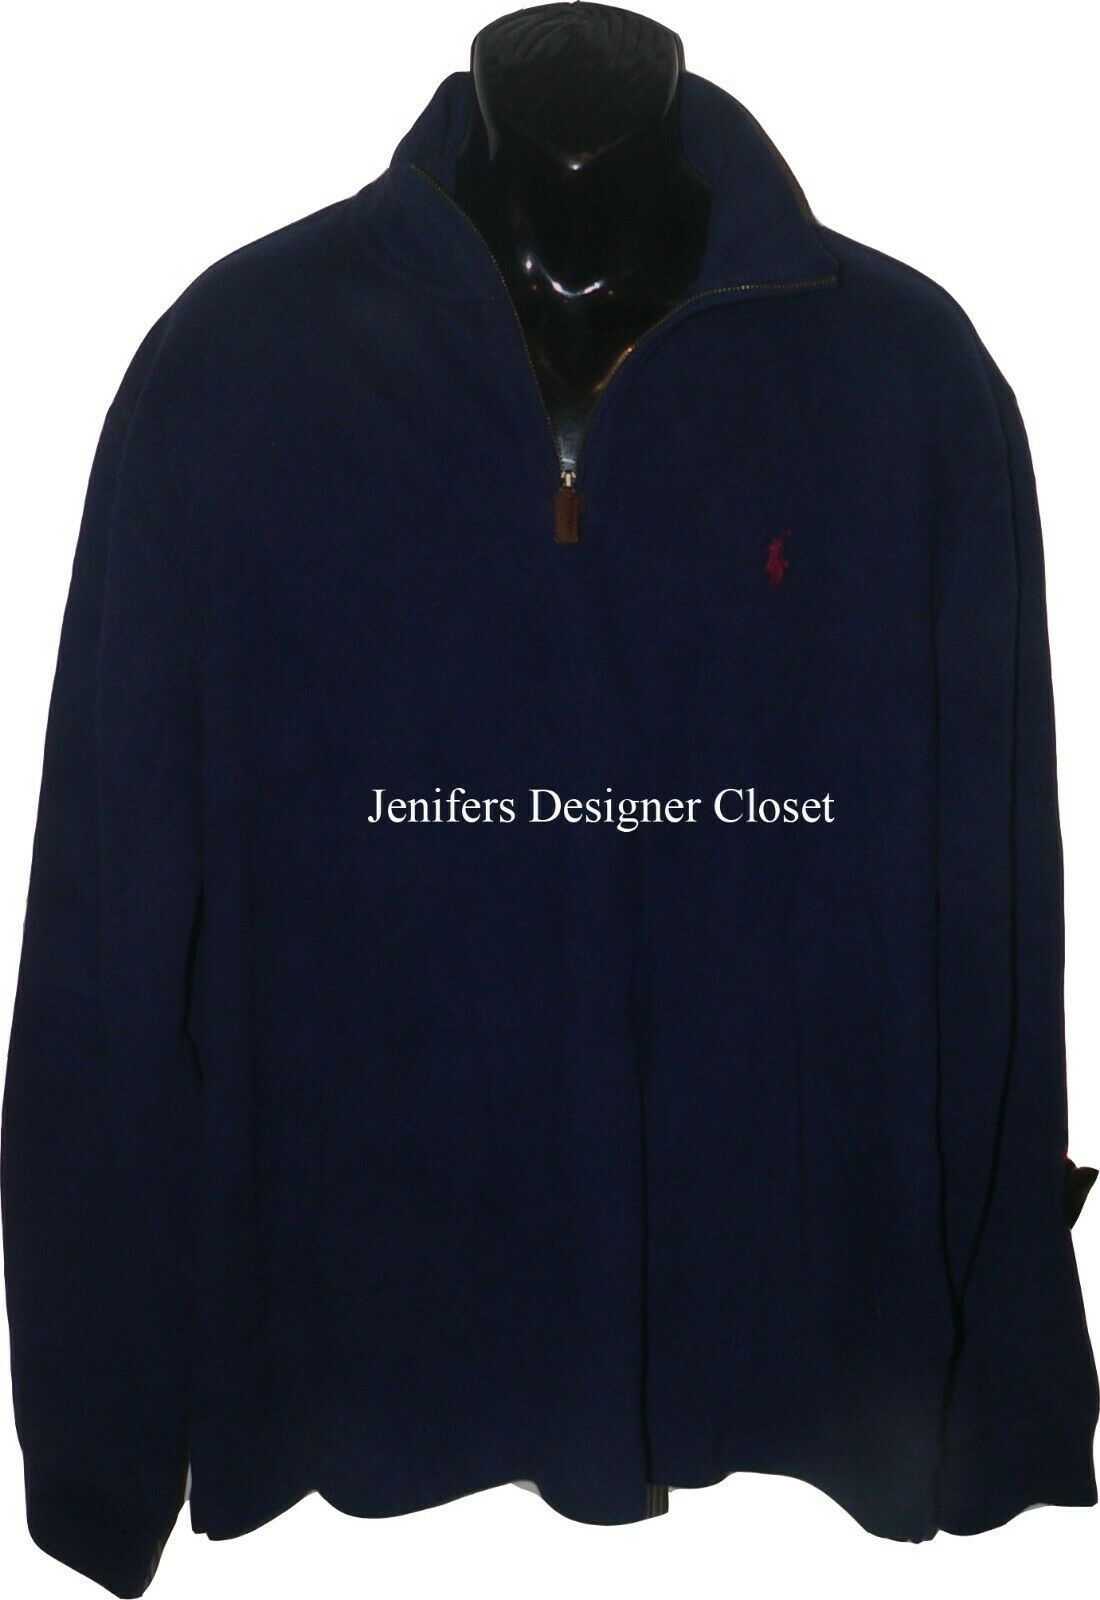 8235536078 Polo Ralph Lauren Sweater: 1 customer review and 765 listings